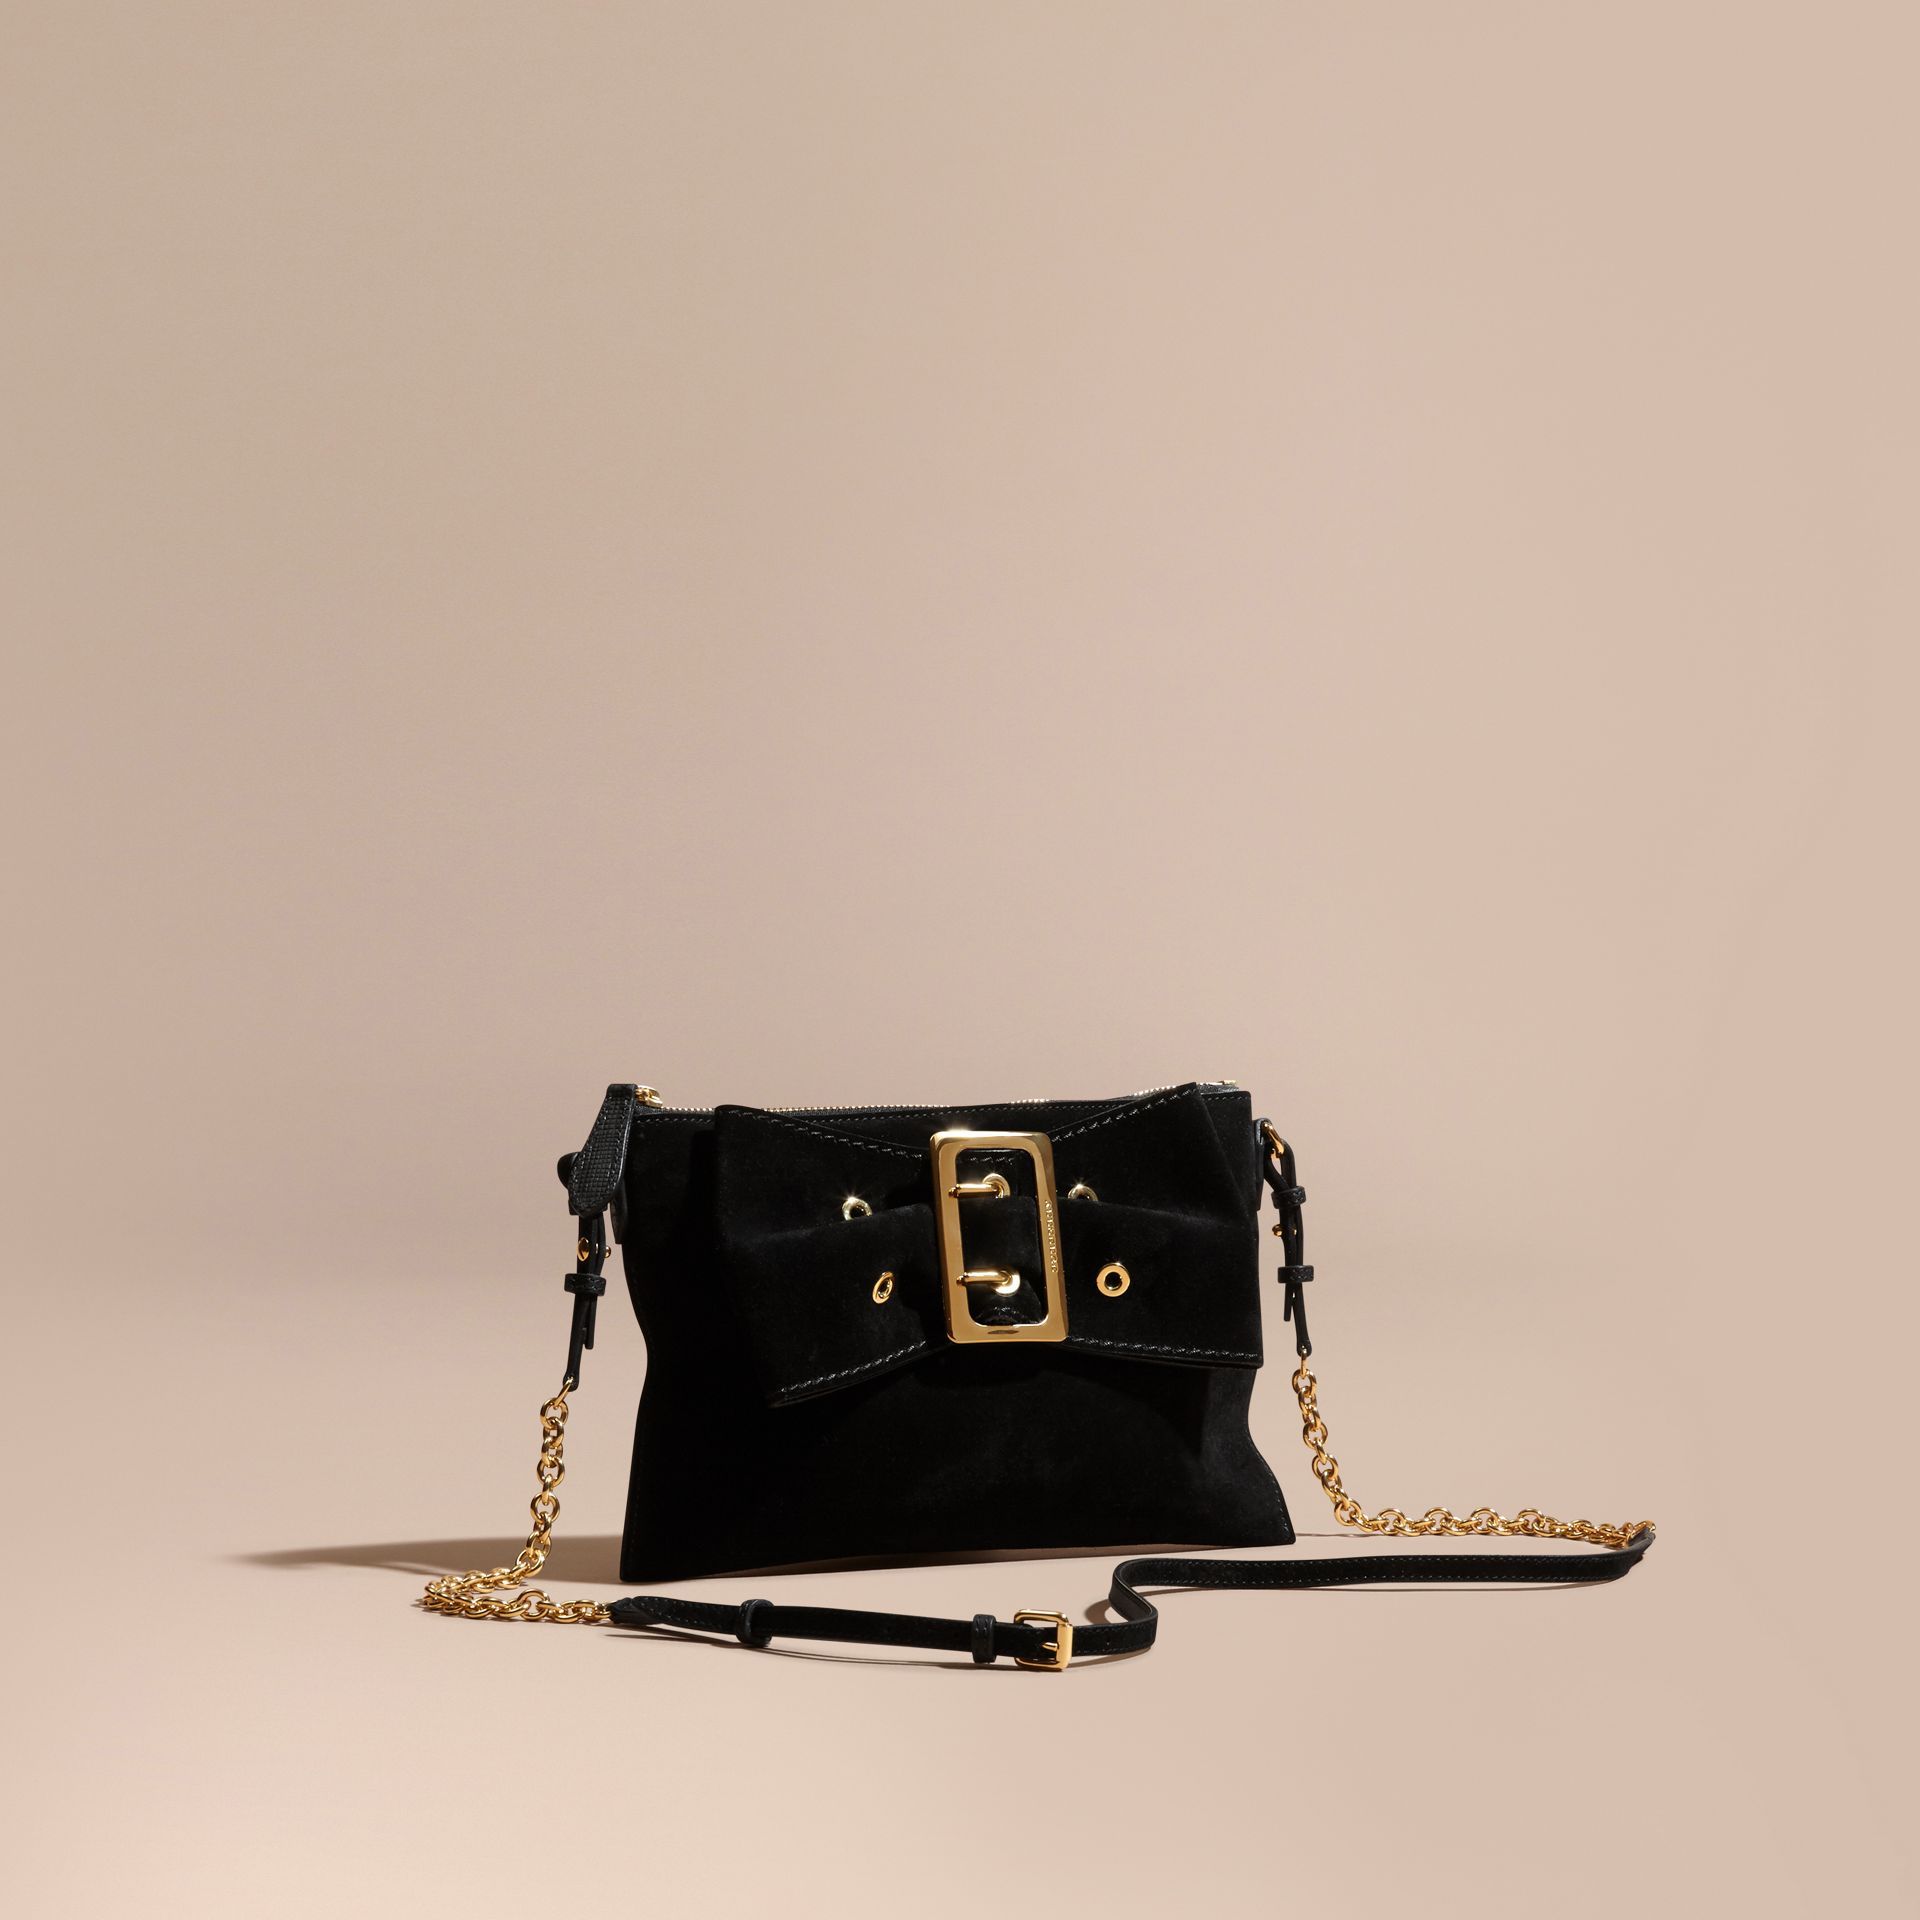 Black Suede Clutch Bag with Buckled Bow Detail Black - gallery image 1